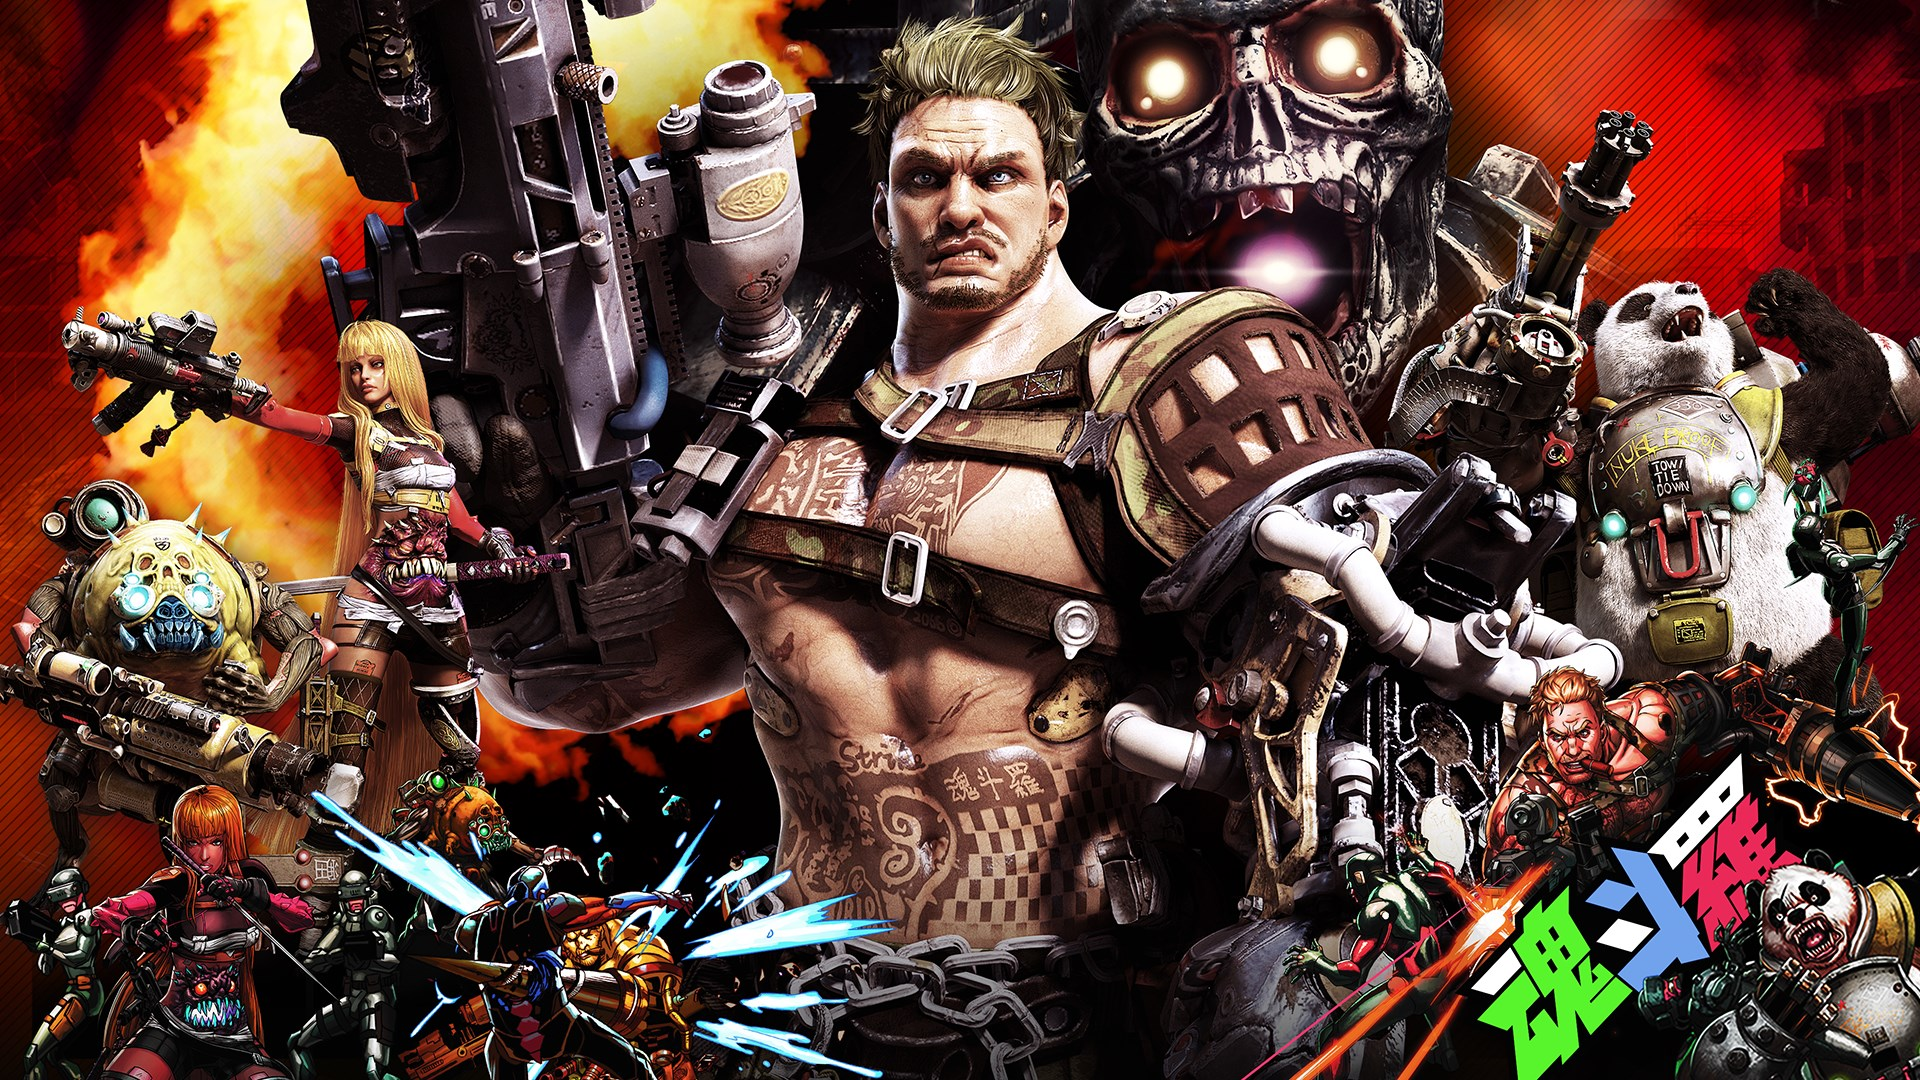 contra rogue corps video game wallpaper 69757